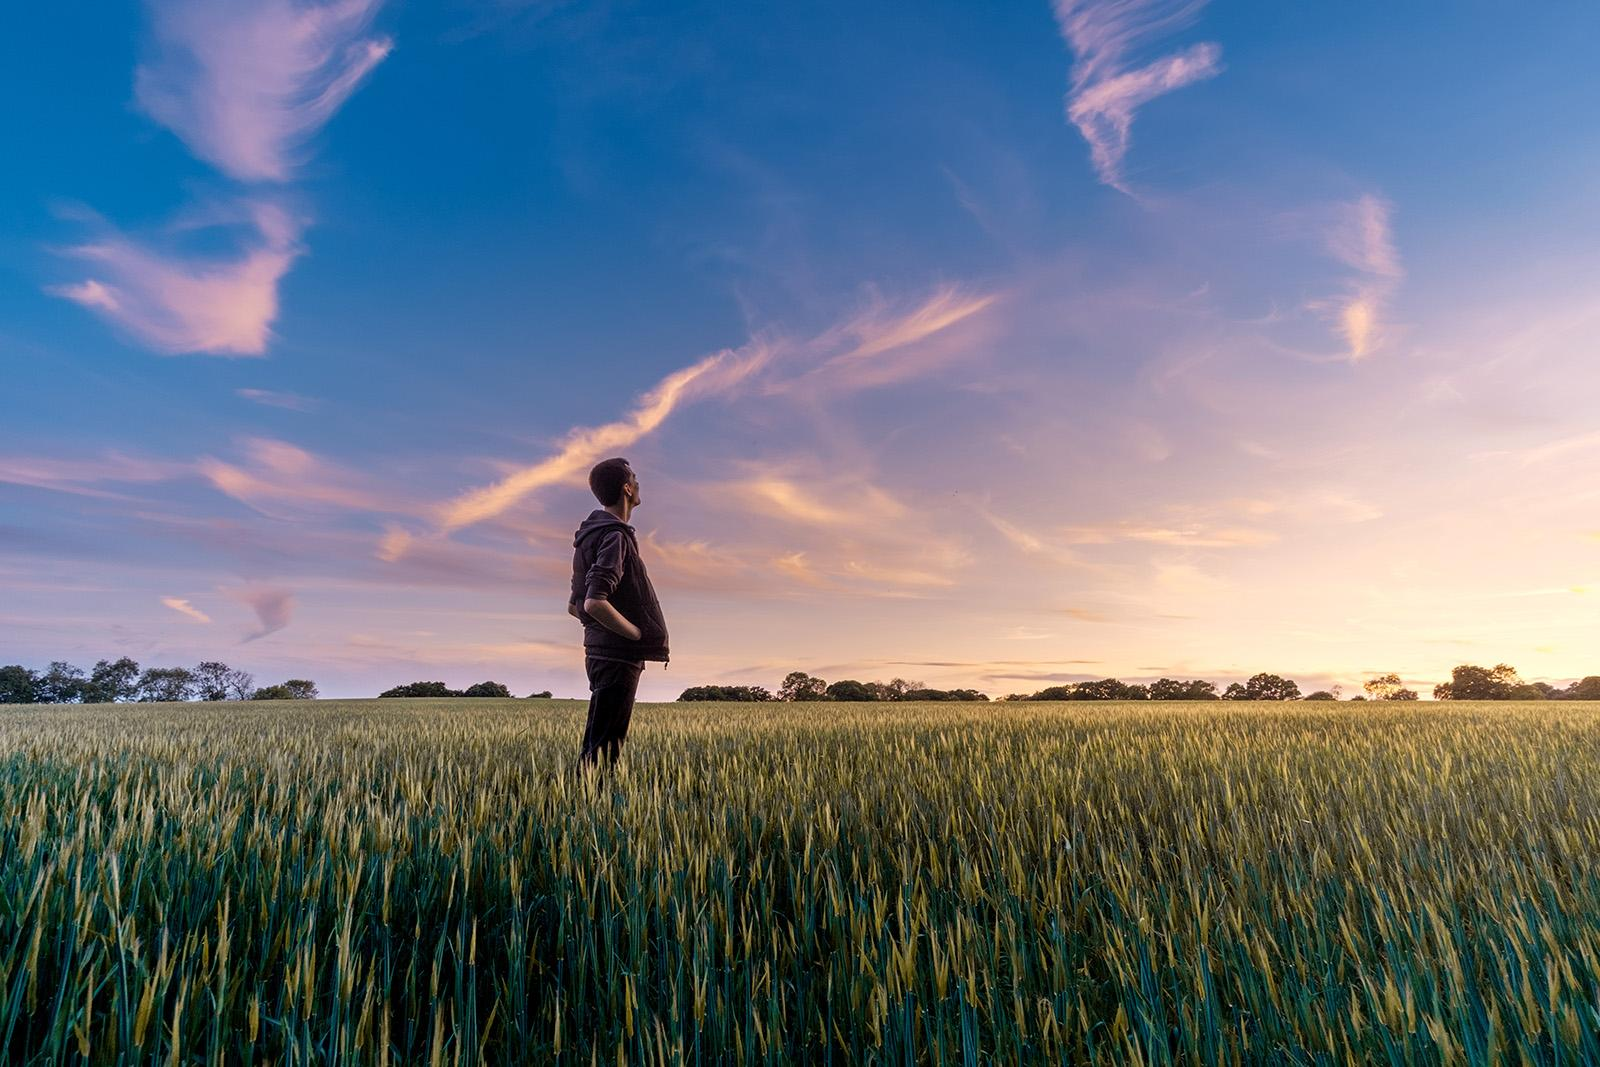 Man in field staring at sky